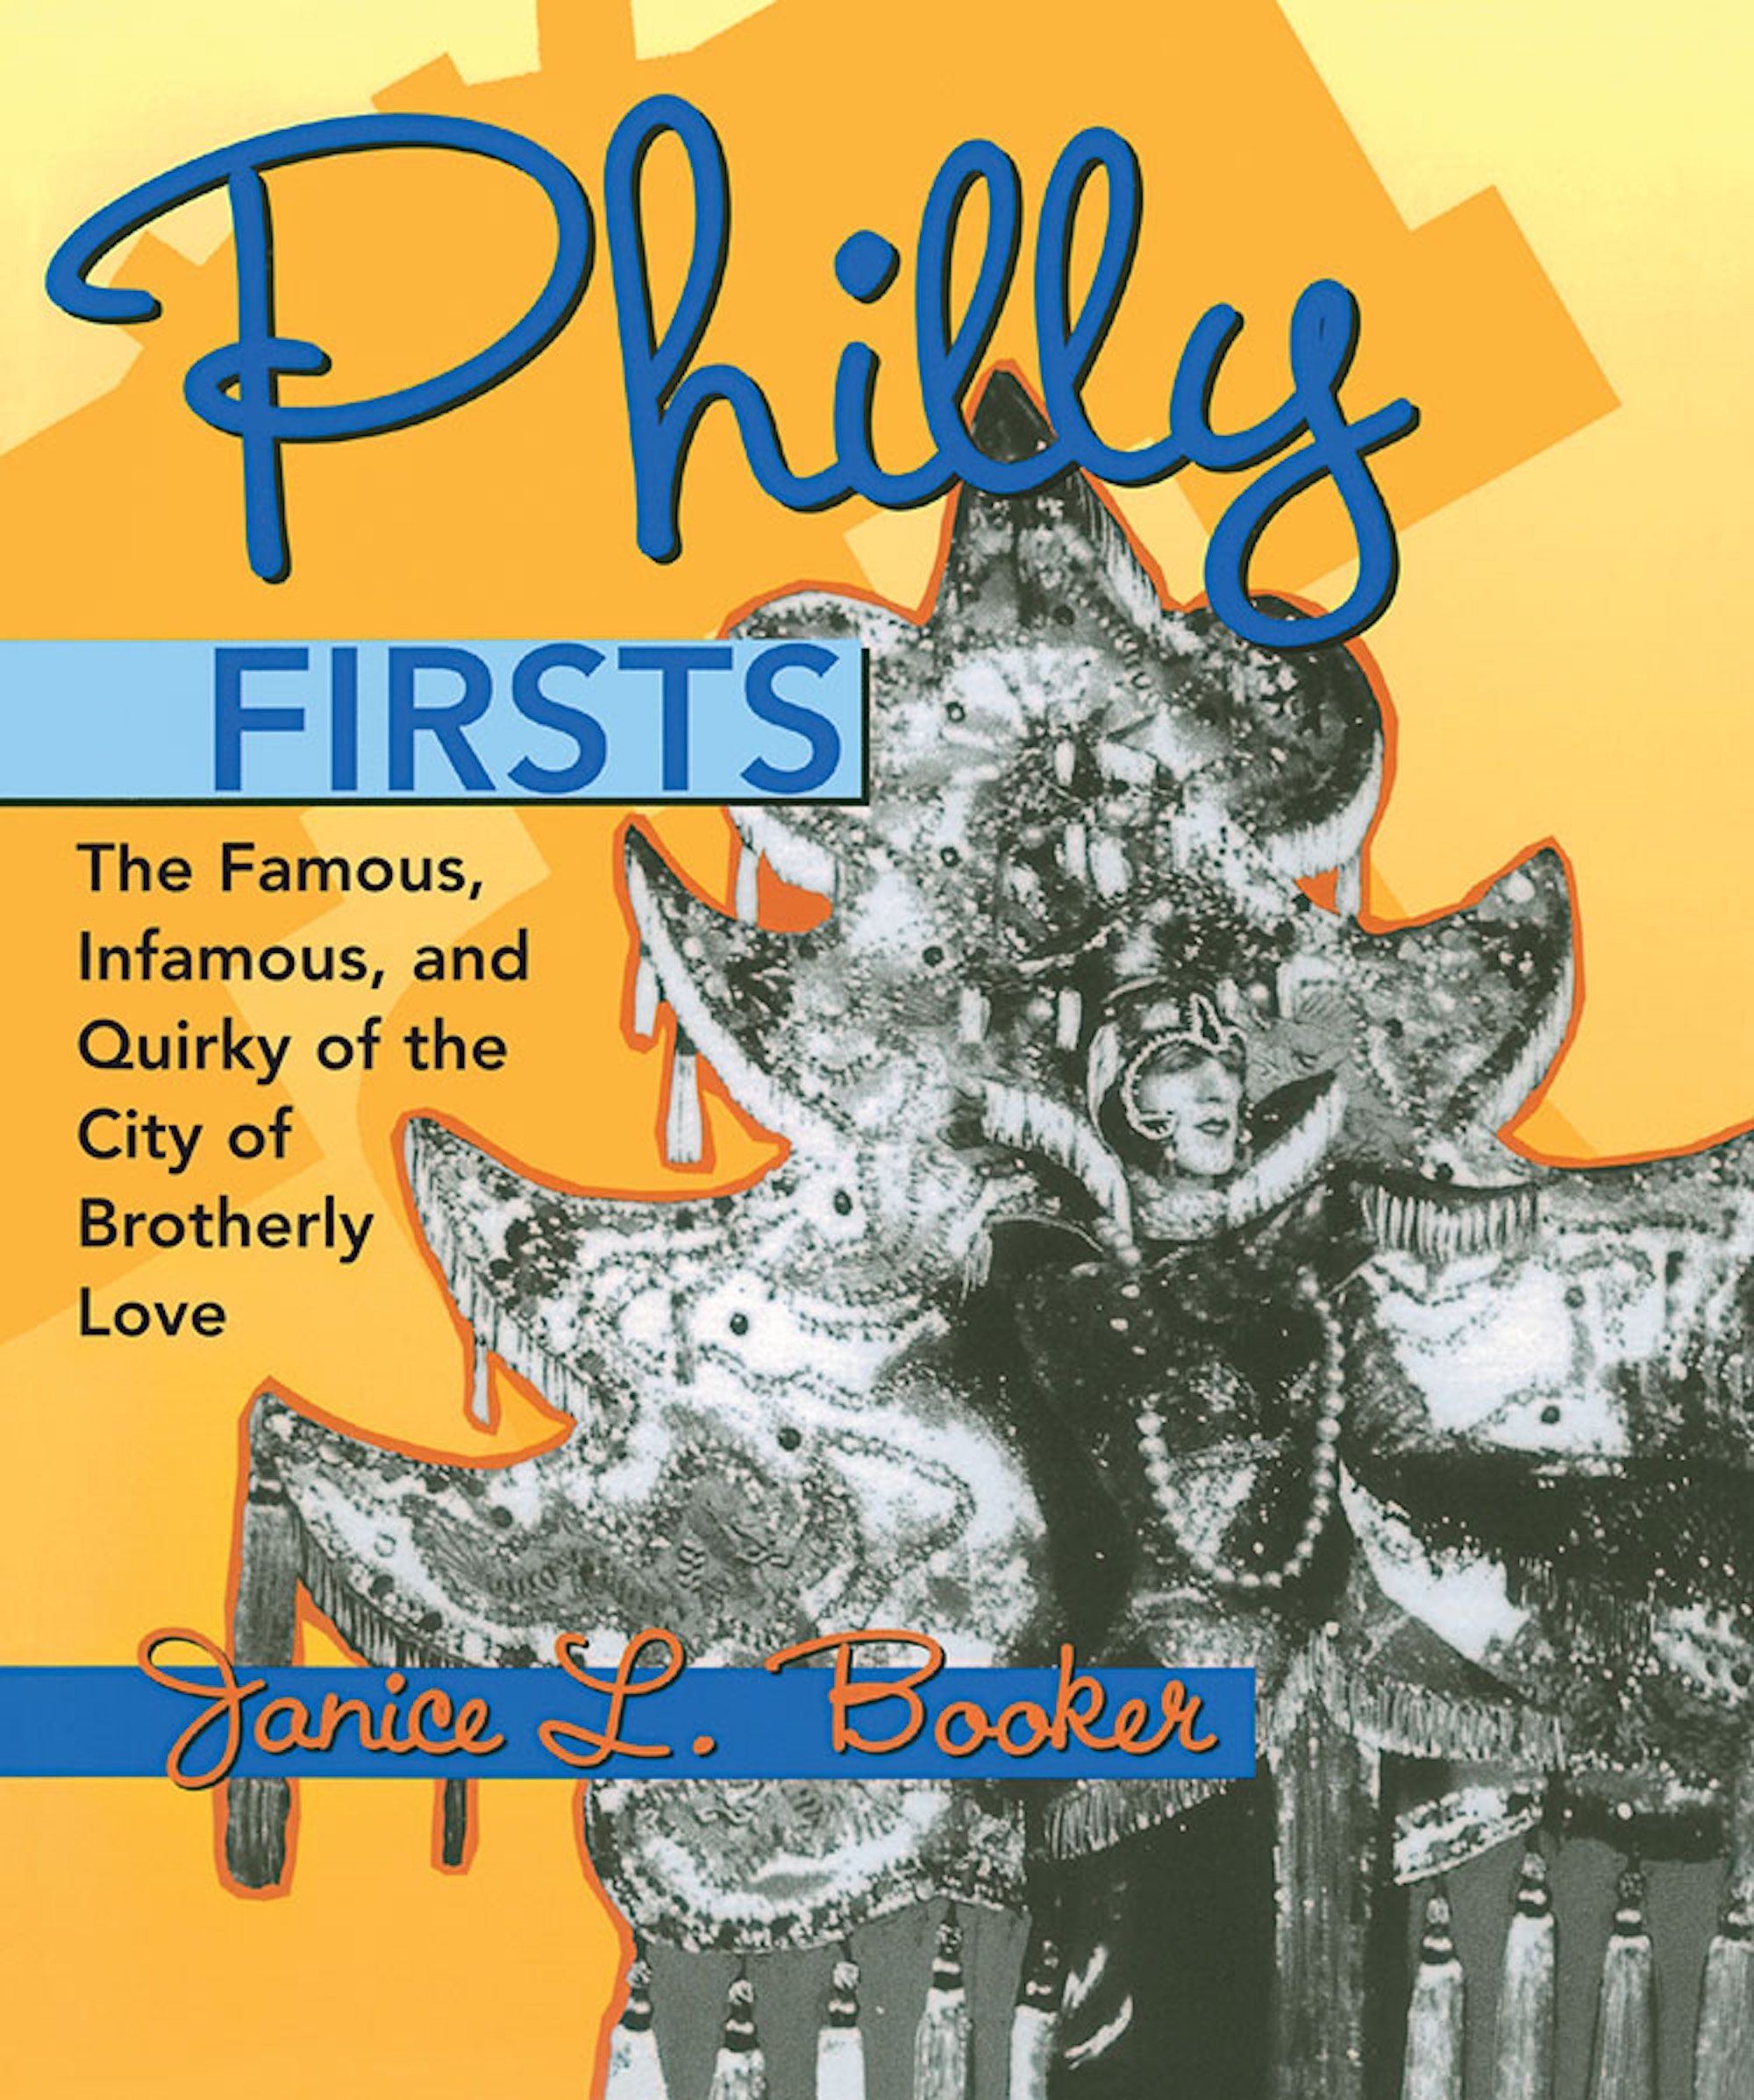 Philly Firsts: The Famous, Infamous, and Quirky of the City of Brotherly  Love: Booker, Janice L.: 9780940159440: Amazon.com: Books